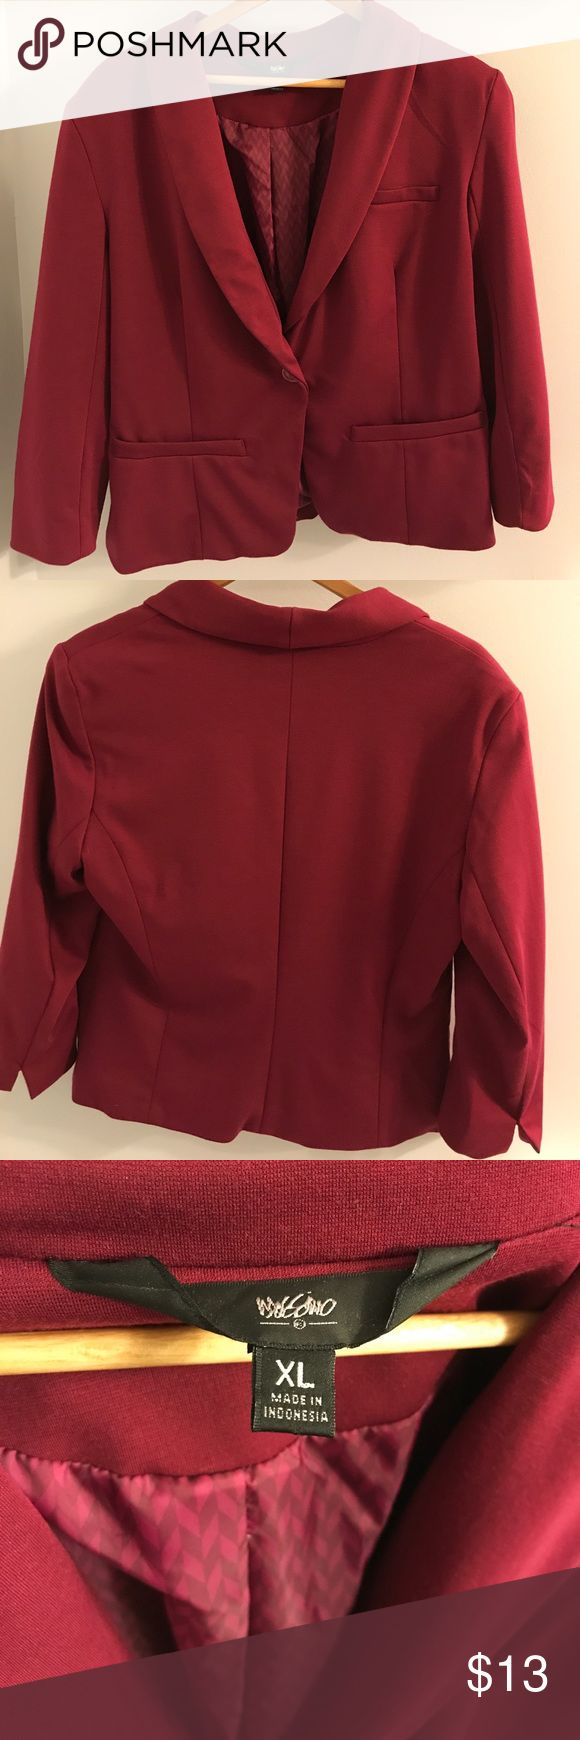 Mossimo Maroon Blazer & Tank. Great shape! Mossimo Blazer & Tank. Goes great together. Very soft material. Great condition! Mossimo Supply Co Jackets & Coats Blazers